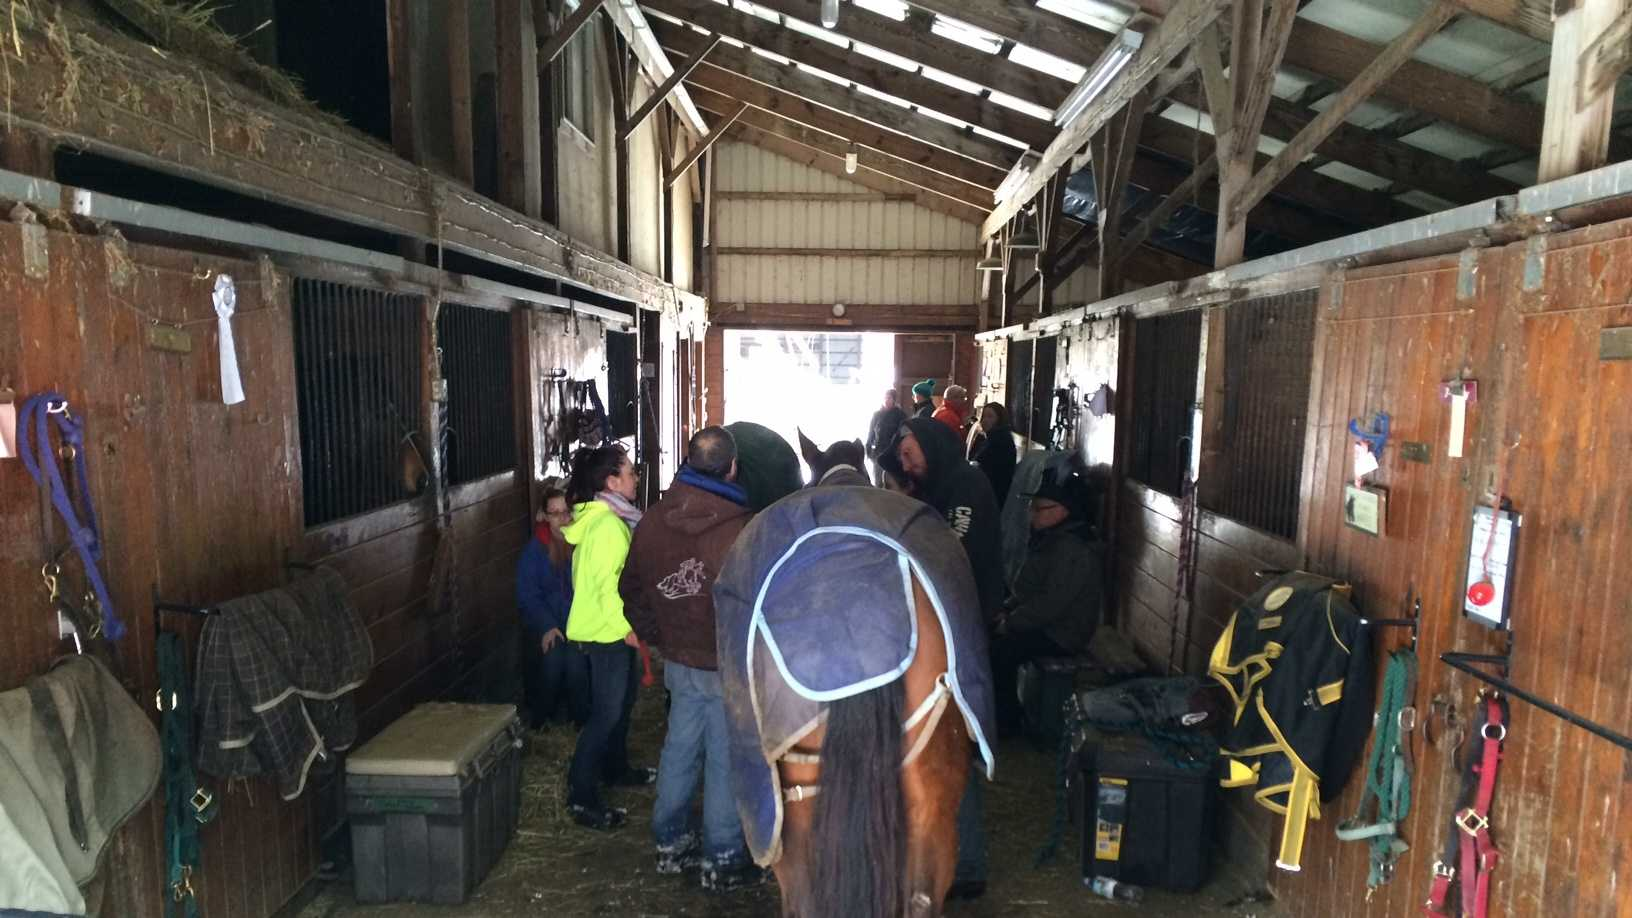 Three horses were trapped in the barn after the collapse, but were removed safely by 9:45 a.m. Four additional horses were safely removed from the barn shortly after the collapse.